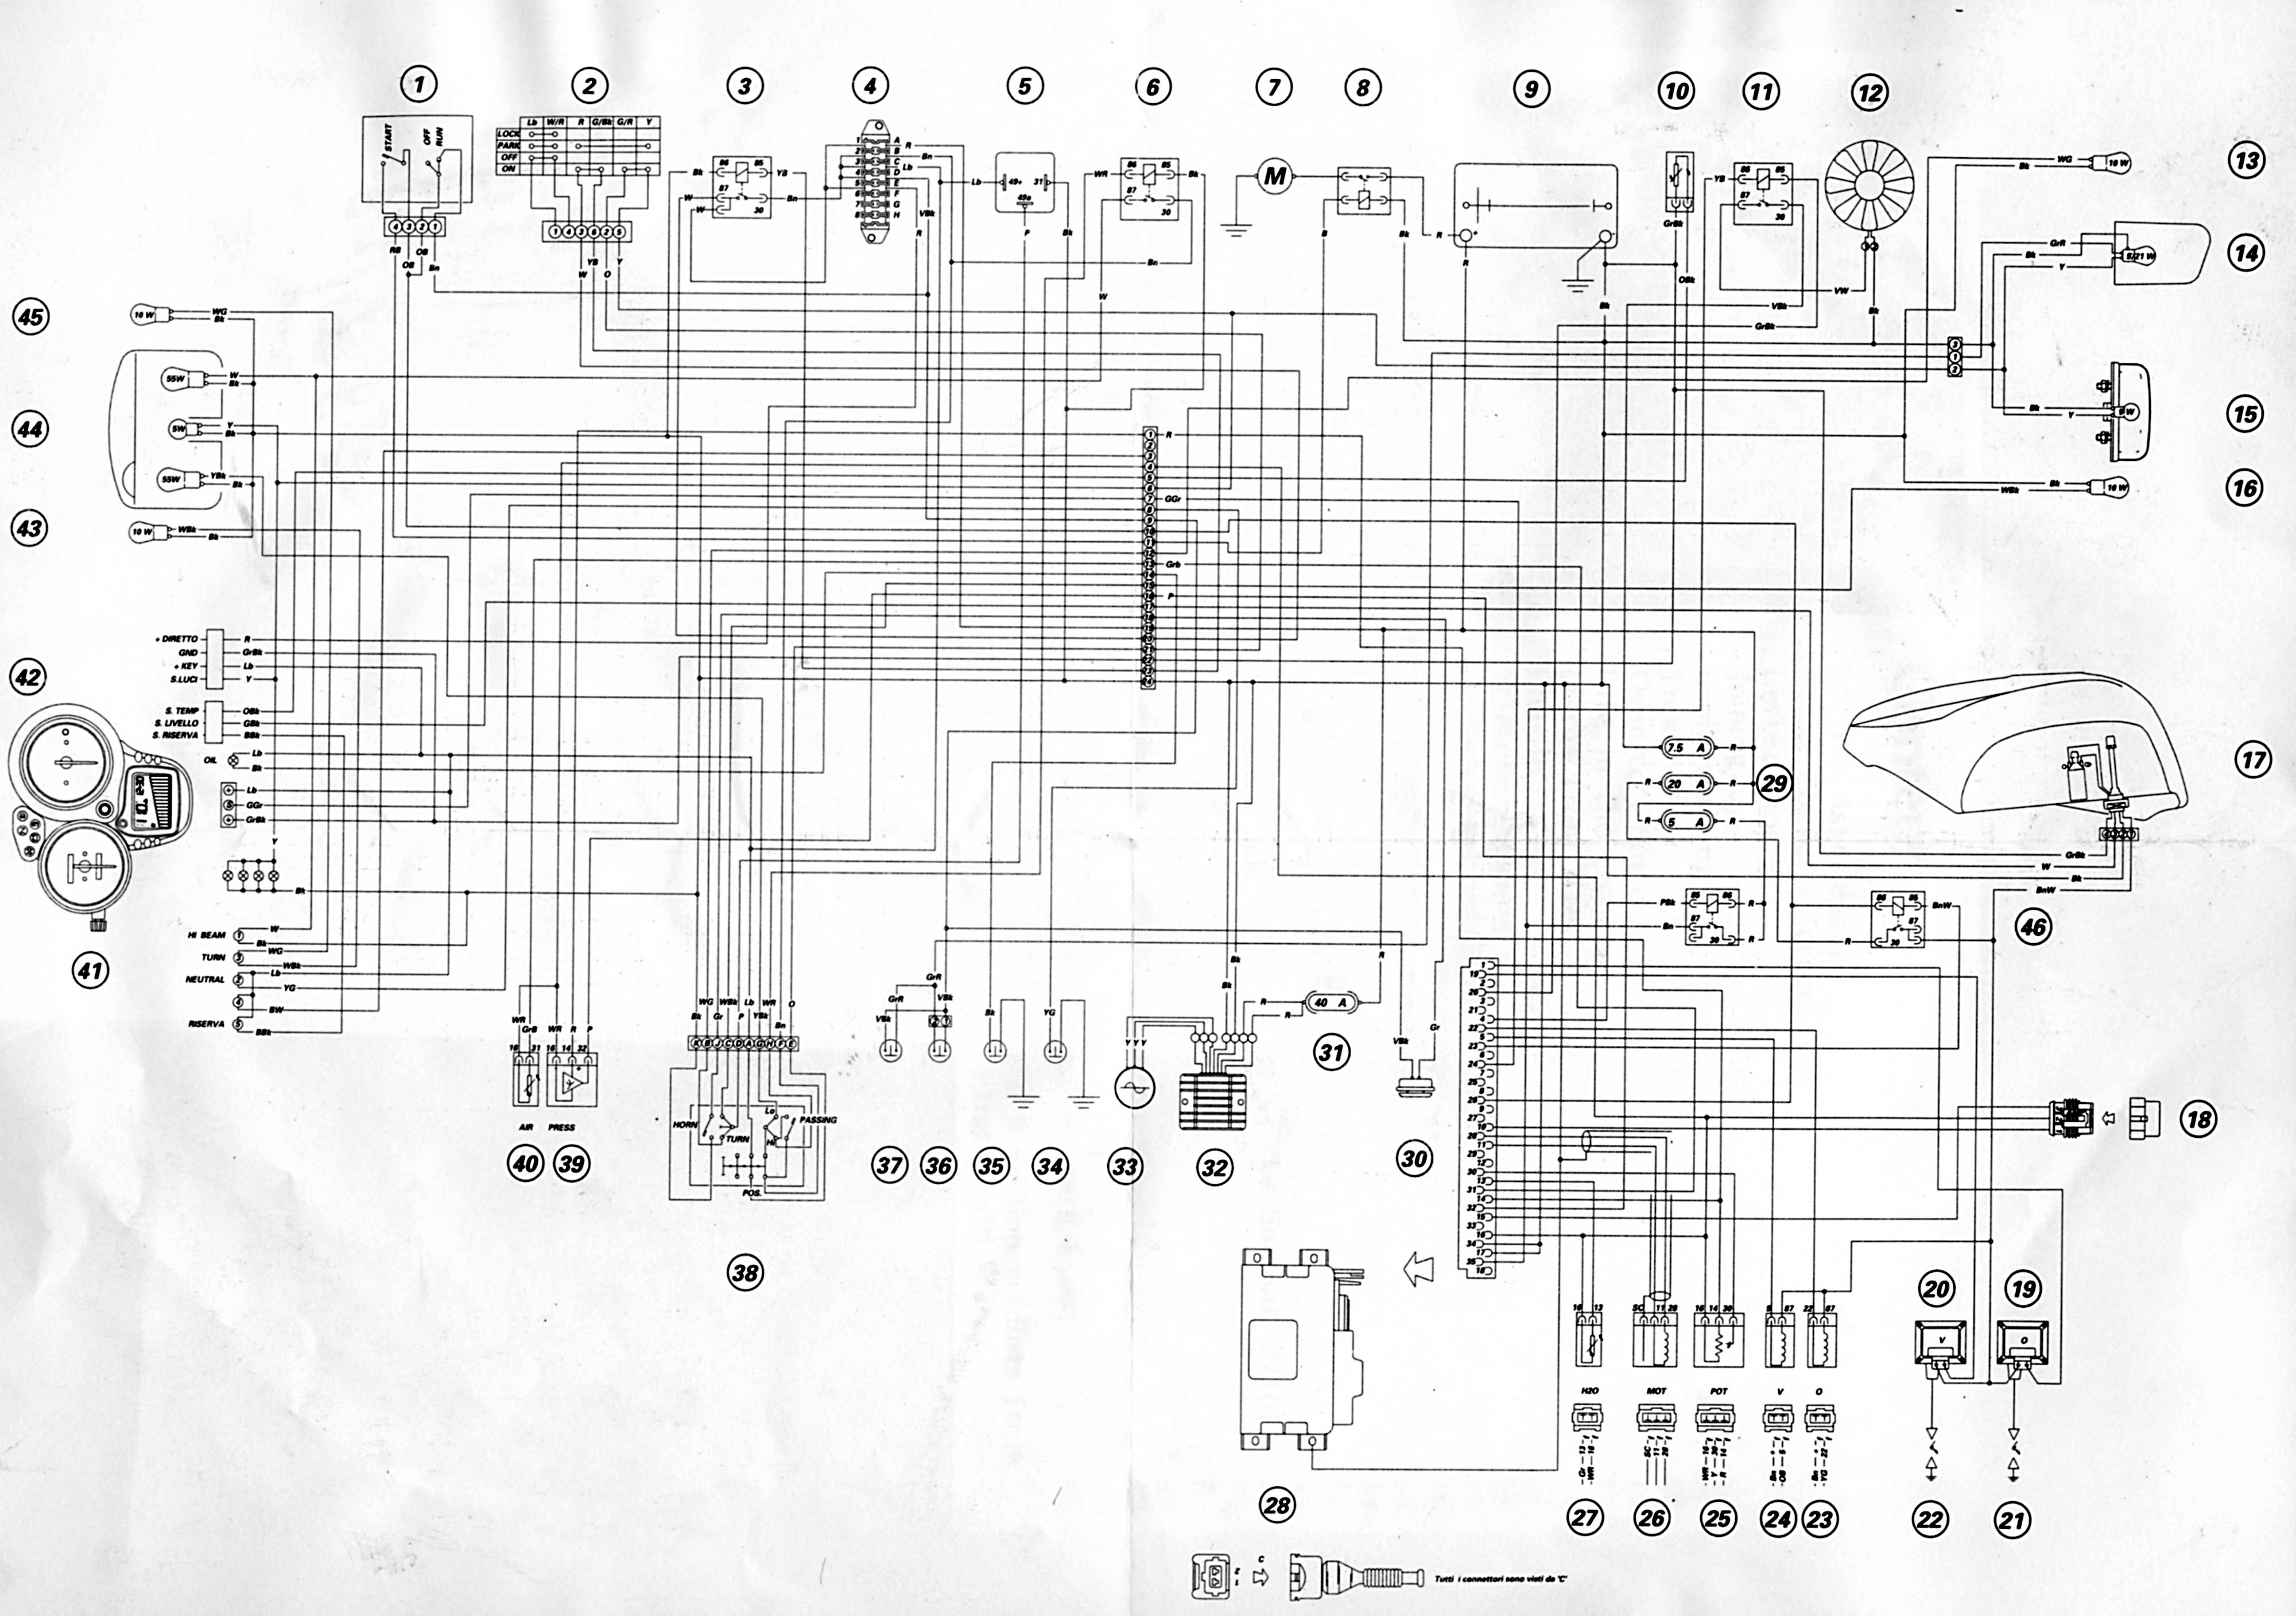 Diagram Ducati St4 Wiring Diagram Full Version Hd Quality Wiring Diagram Diagramstana Dolcialchimie It